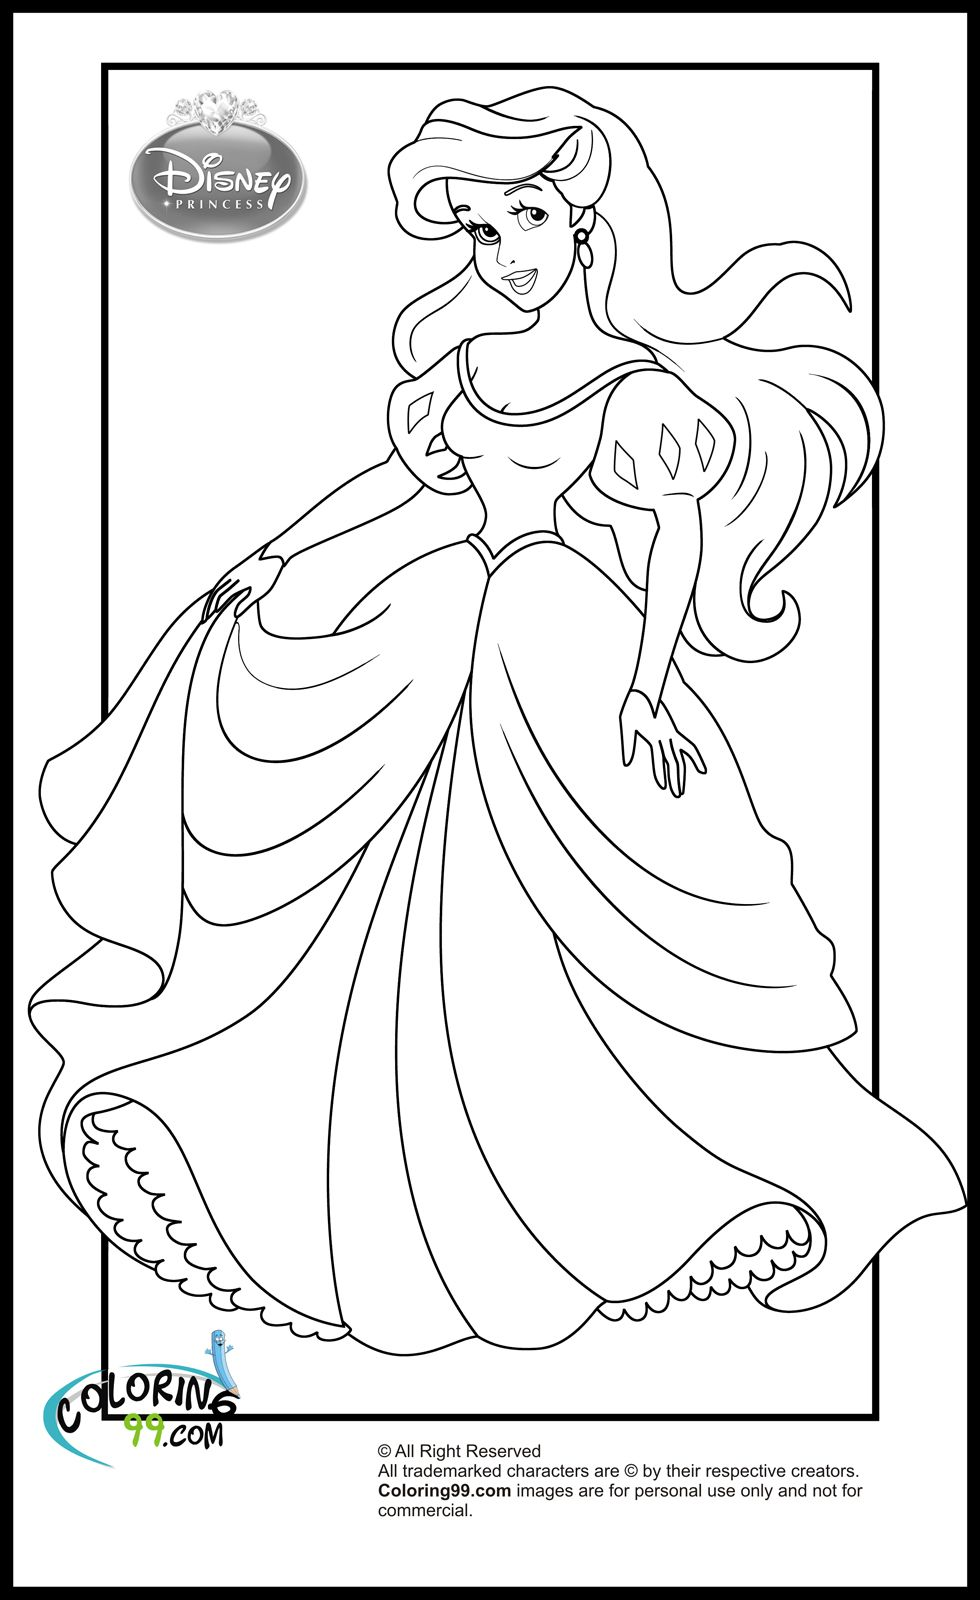 disney princess ariel coloring pages jpg 980 1 600 pixels